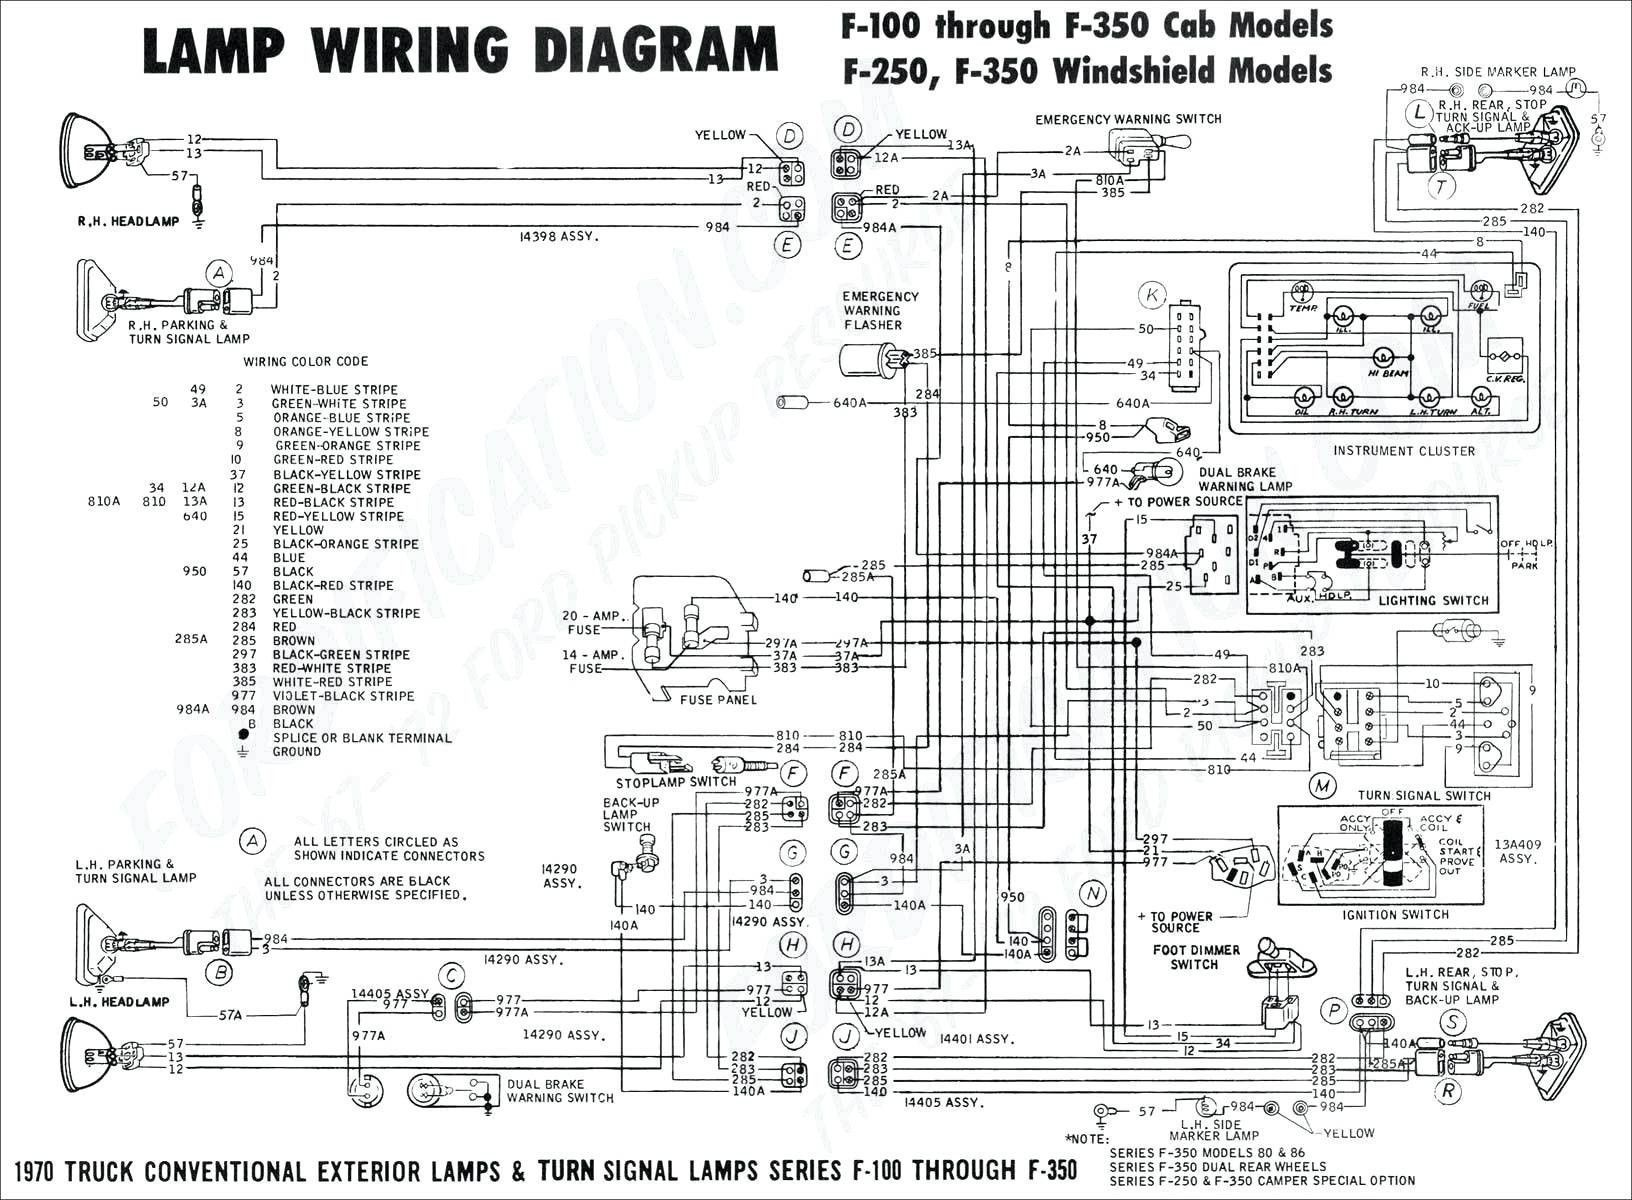 Wiring Diagram Of Motorcycle Honda Xrm 110 Bookingritzcarlton Info Electrical Wiring Diagram Electrical Diagram Trailer Wiring Diagram